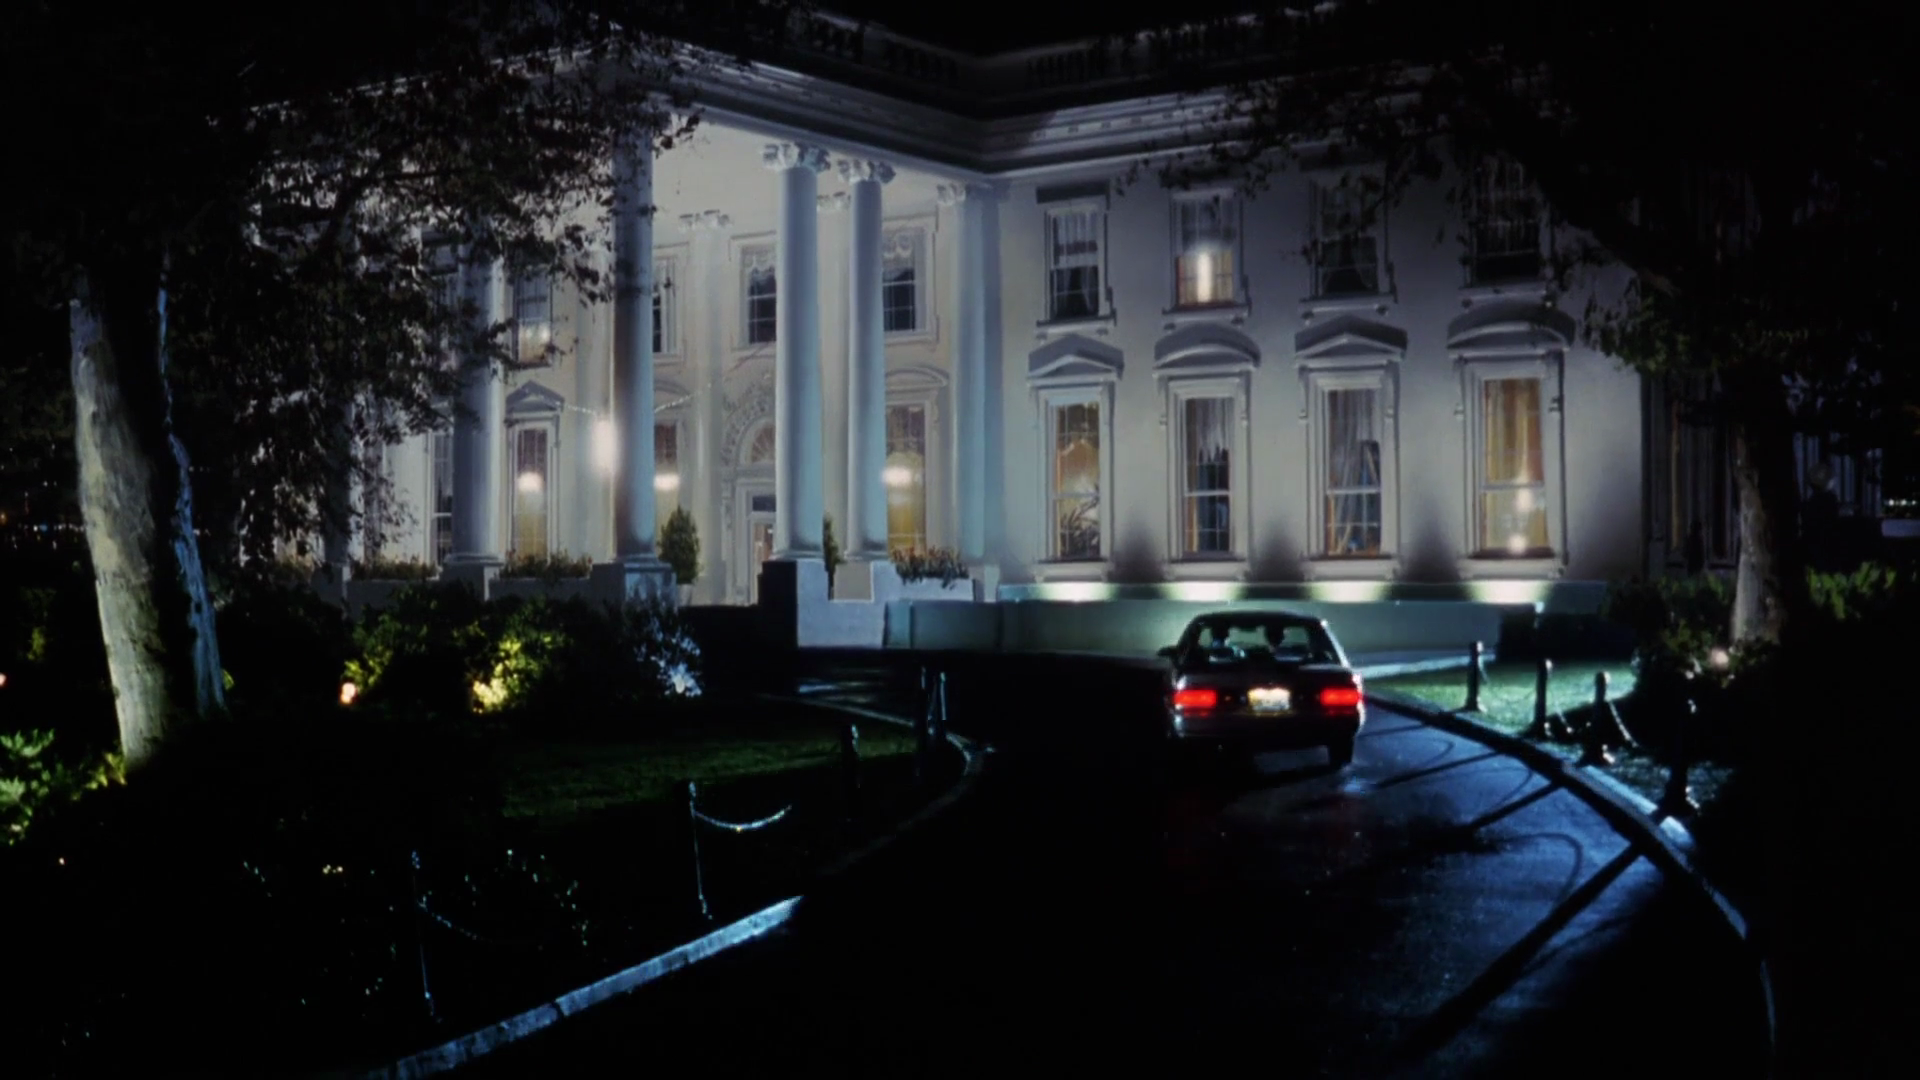 Figure 6. Shot of the White House, North Portico in Dave, Ivan Reitman (1993)